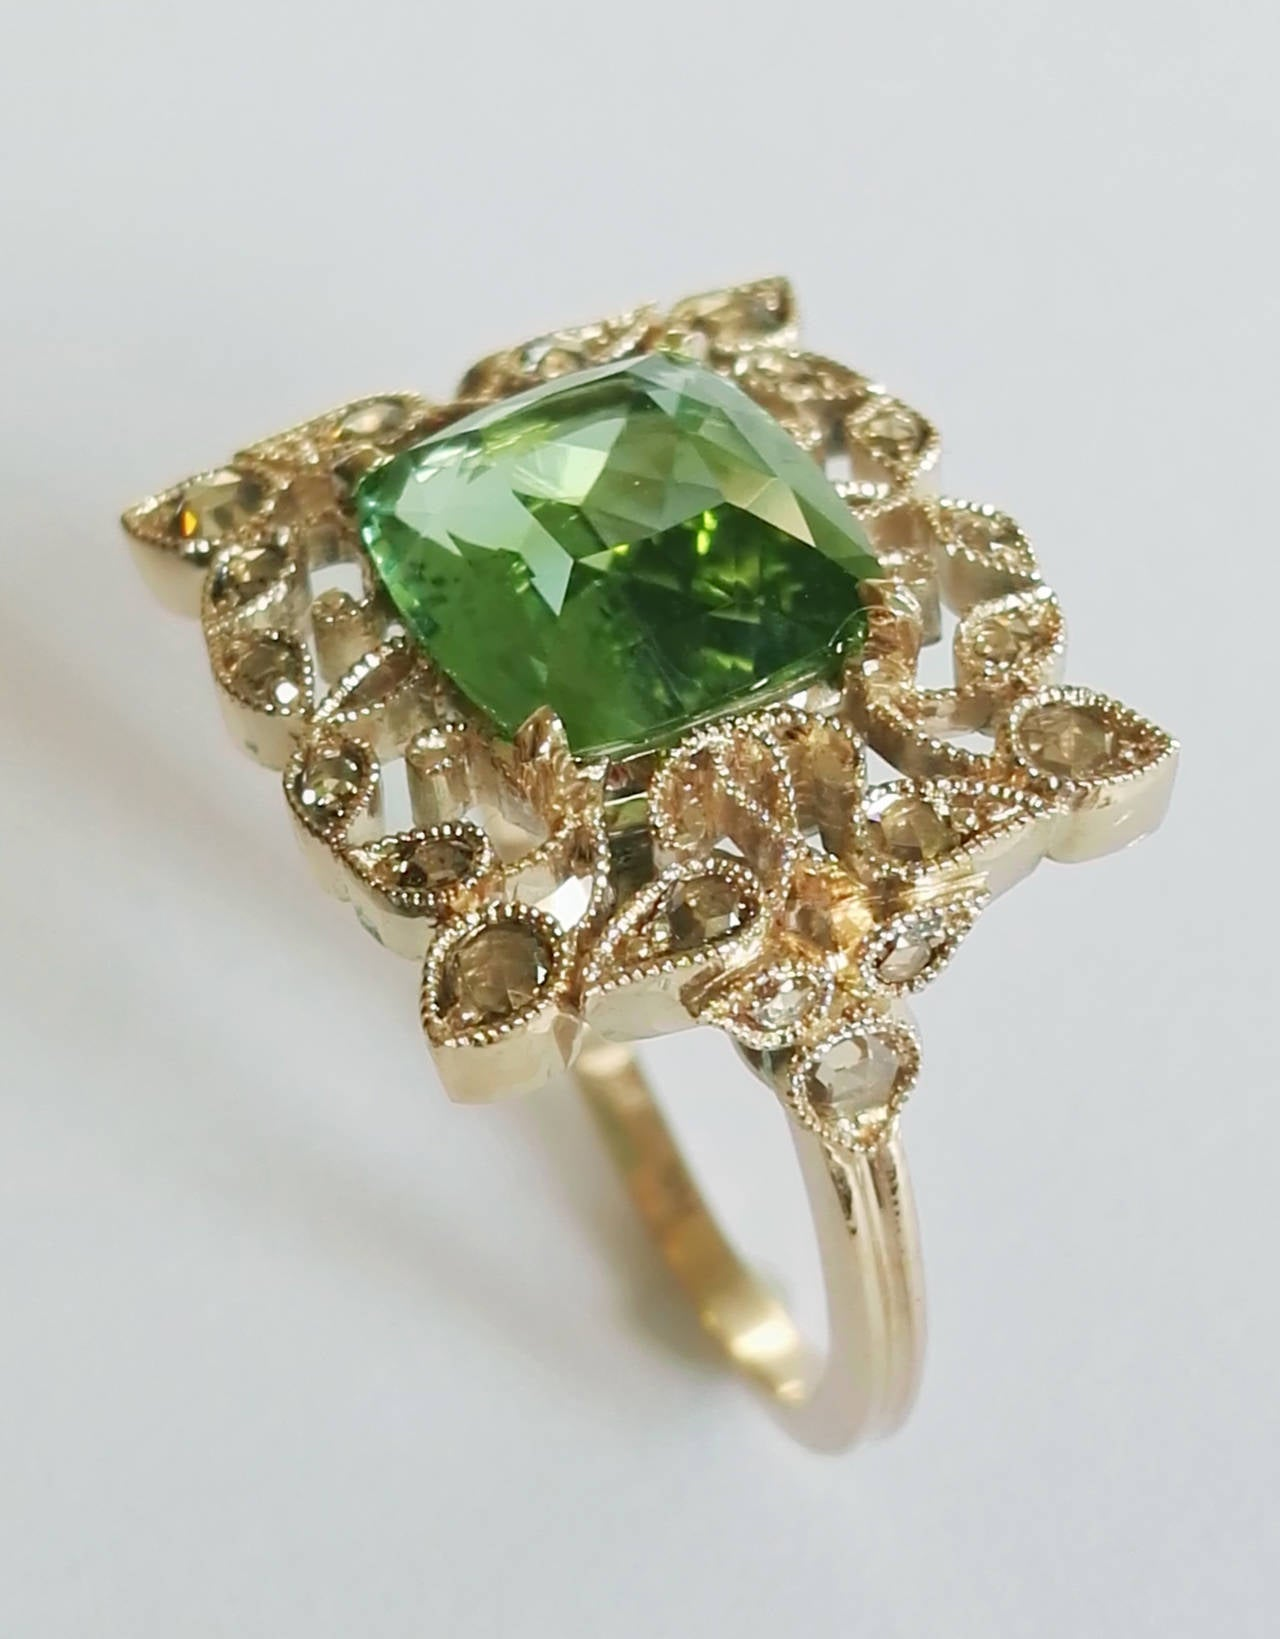 Dalben Green Tourmaline Rose Cut Diamond Gold Fashion Ring For Sale 1